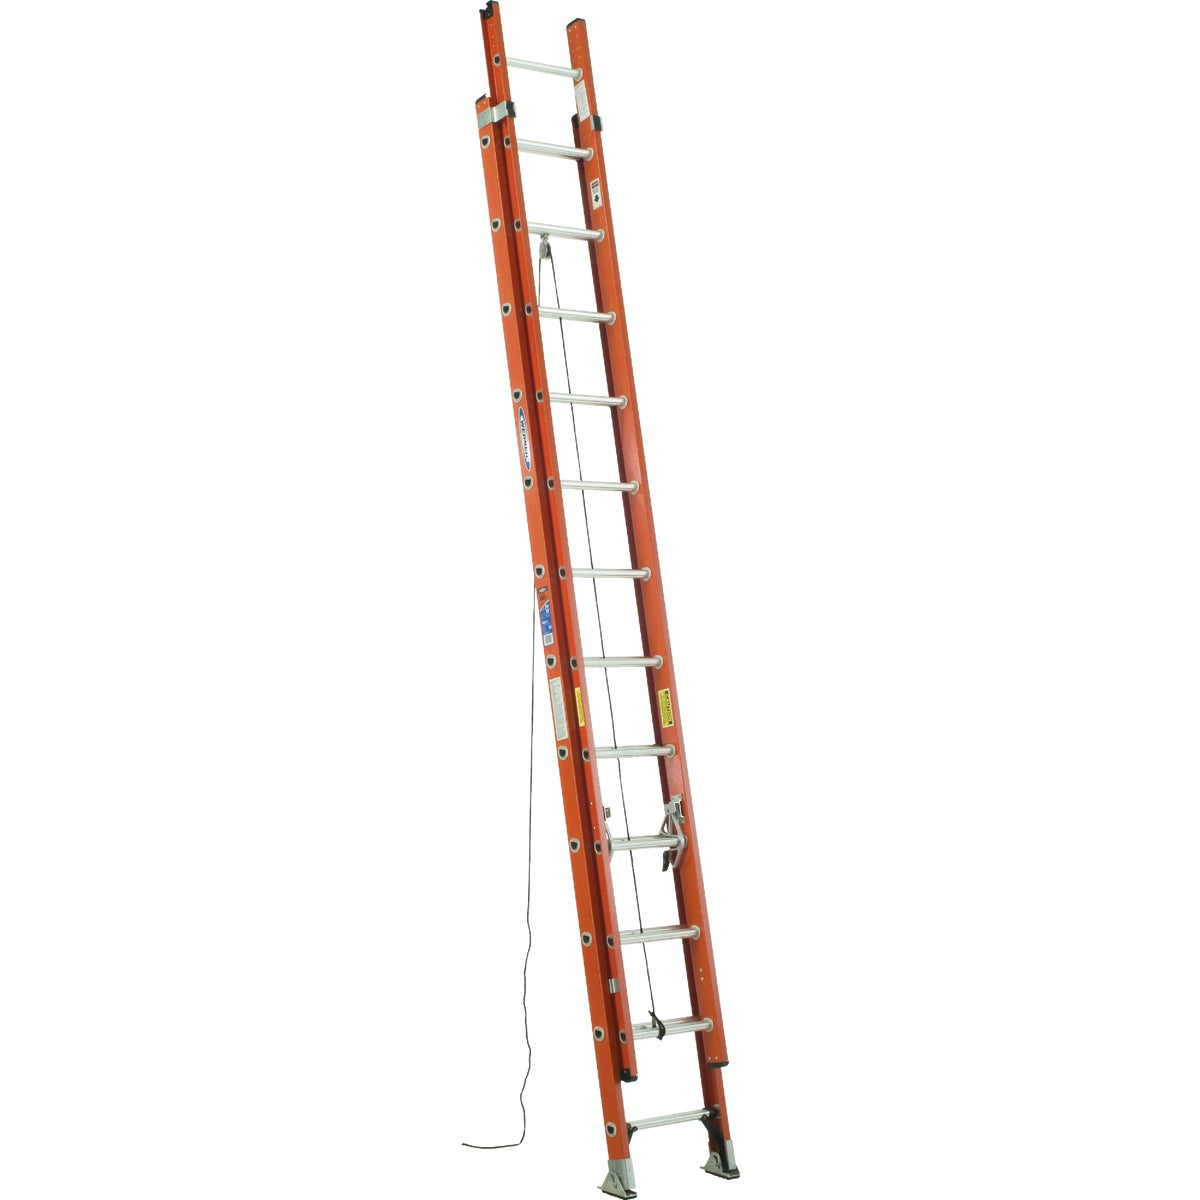 T-1A 24' FBGL EXT LADDER - D6224-2 by Werner Ladder